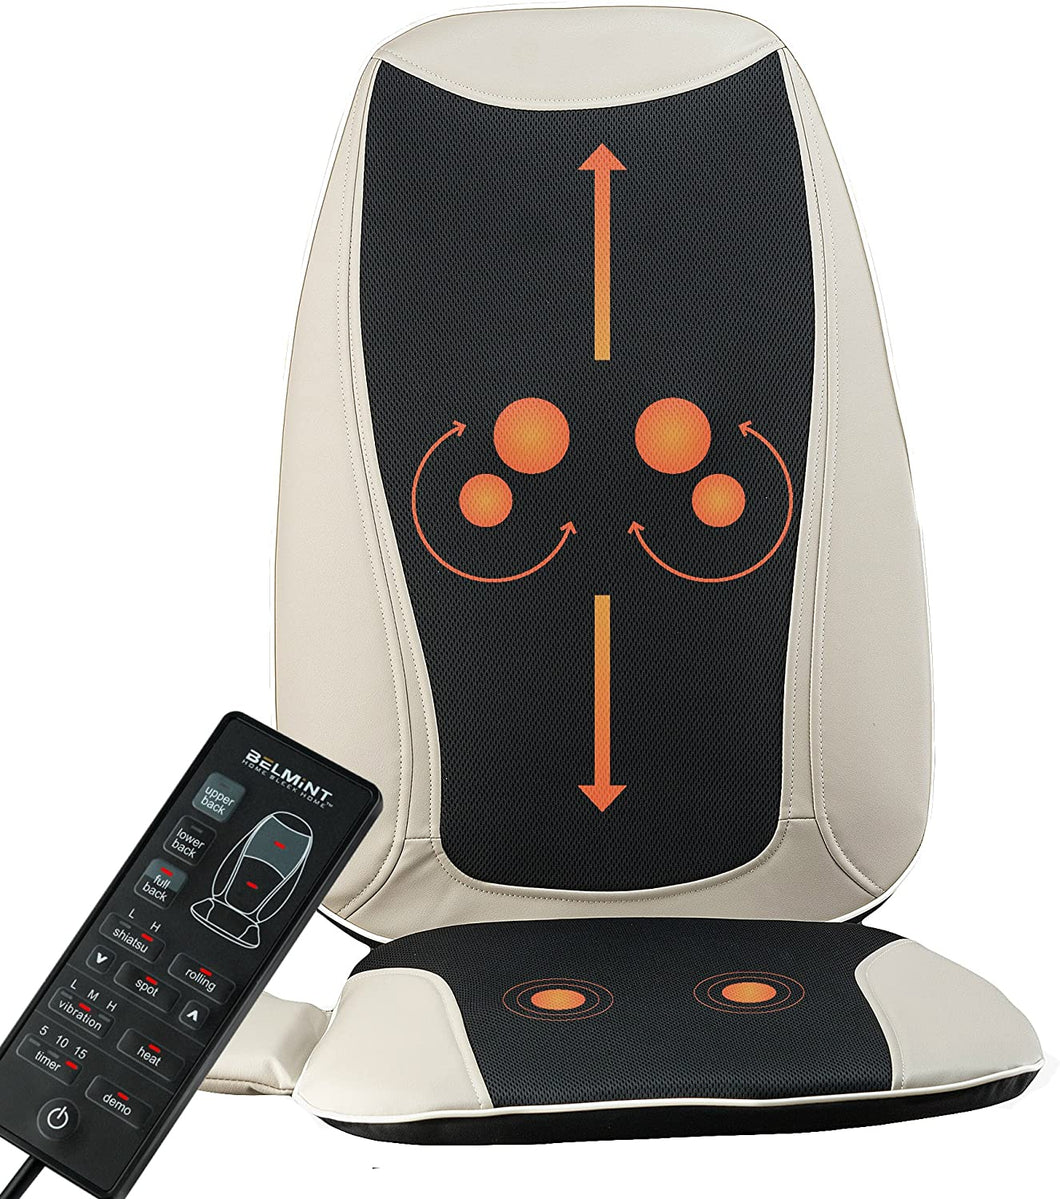 Shiatsu Massage Seat Cushion with Heat